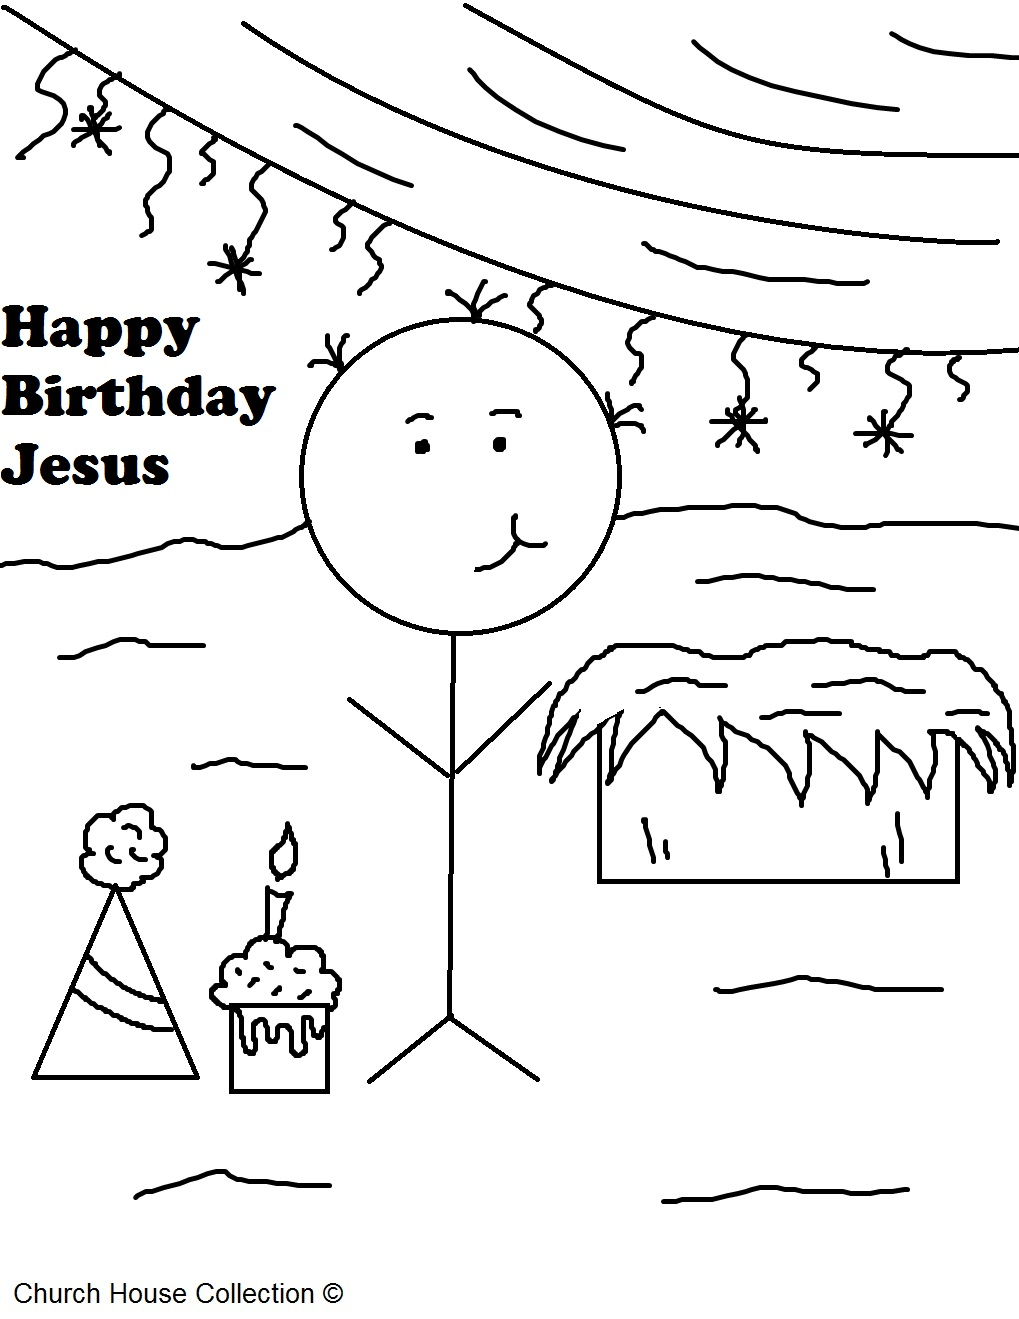 Free Happy Birthday Jesus Coloring Pages For Kids in Sunday School or Children's Church by Church House Collection